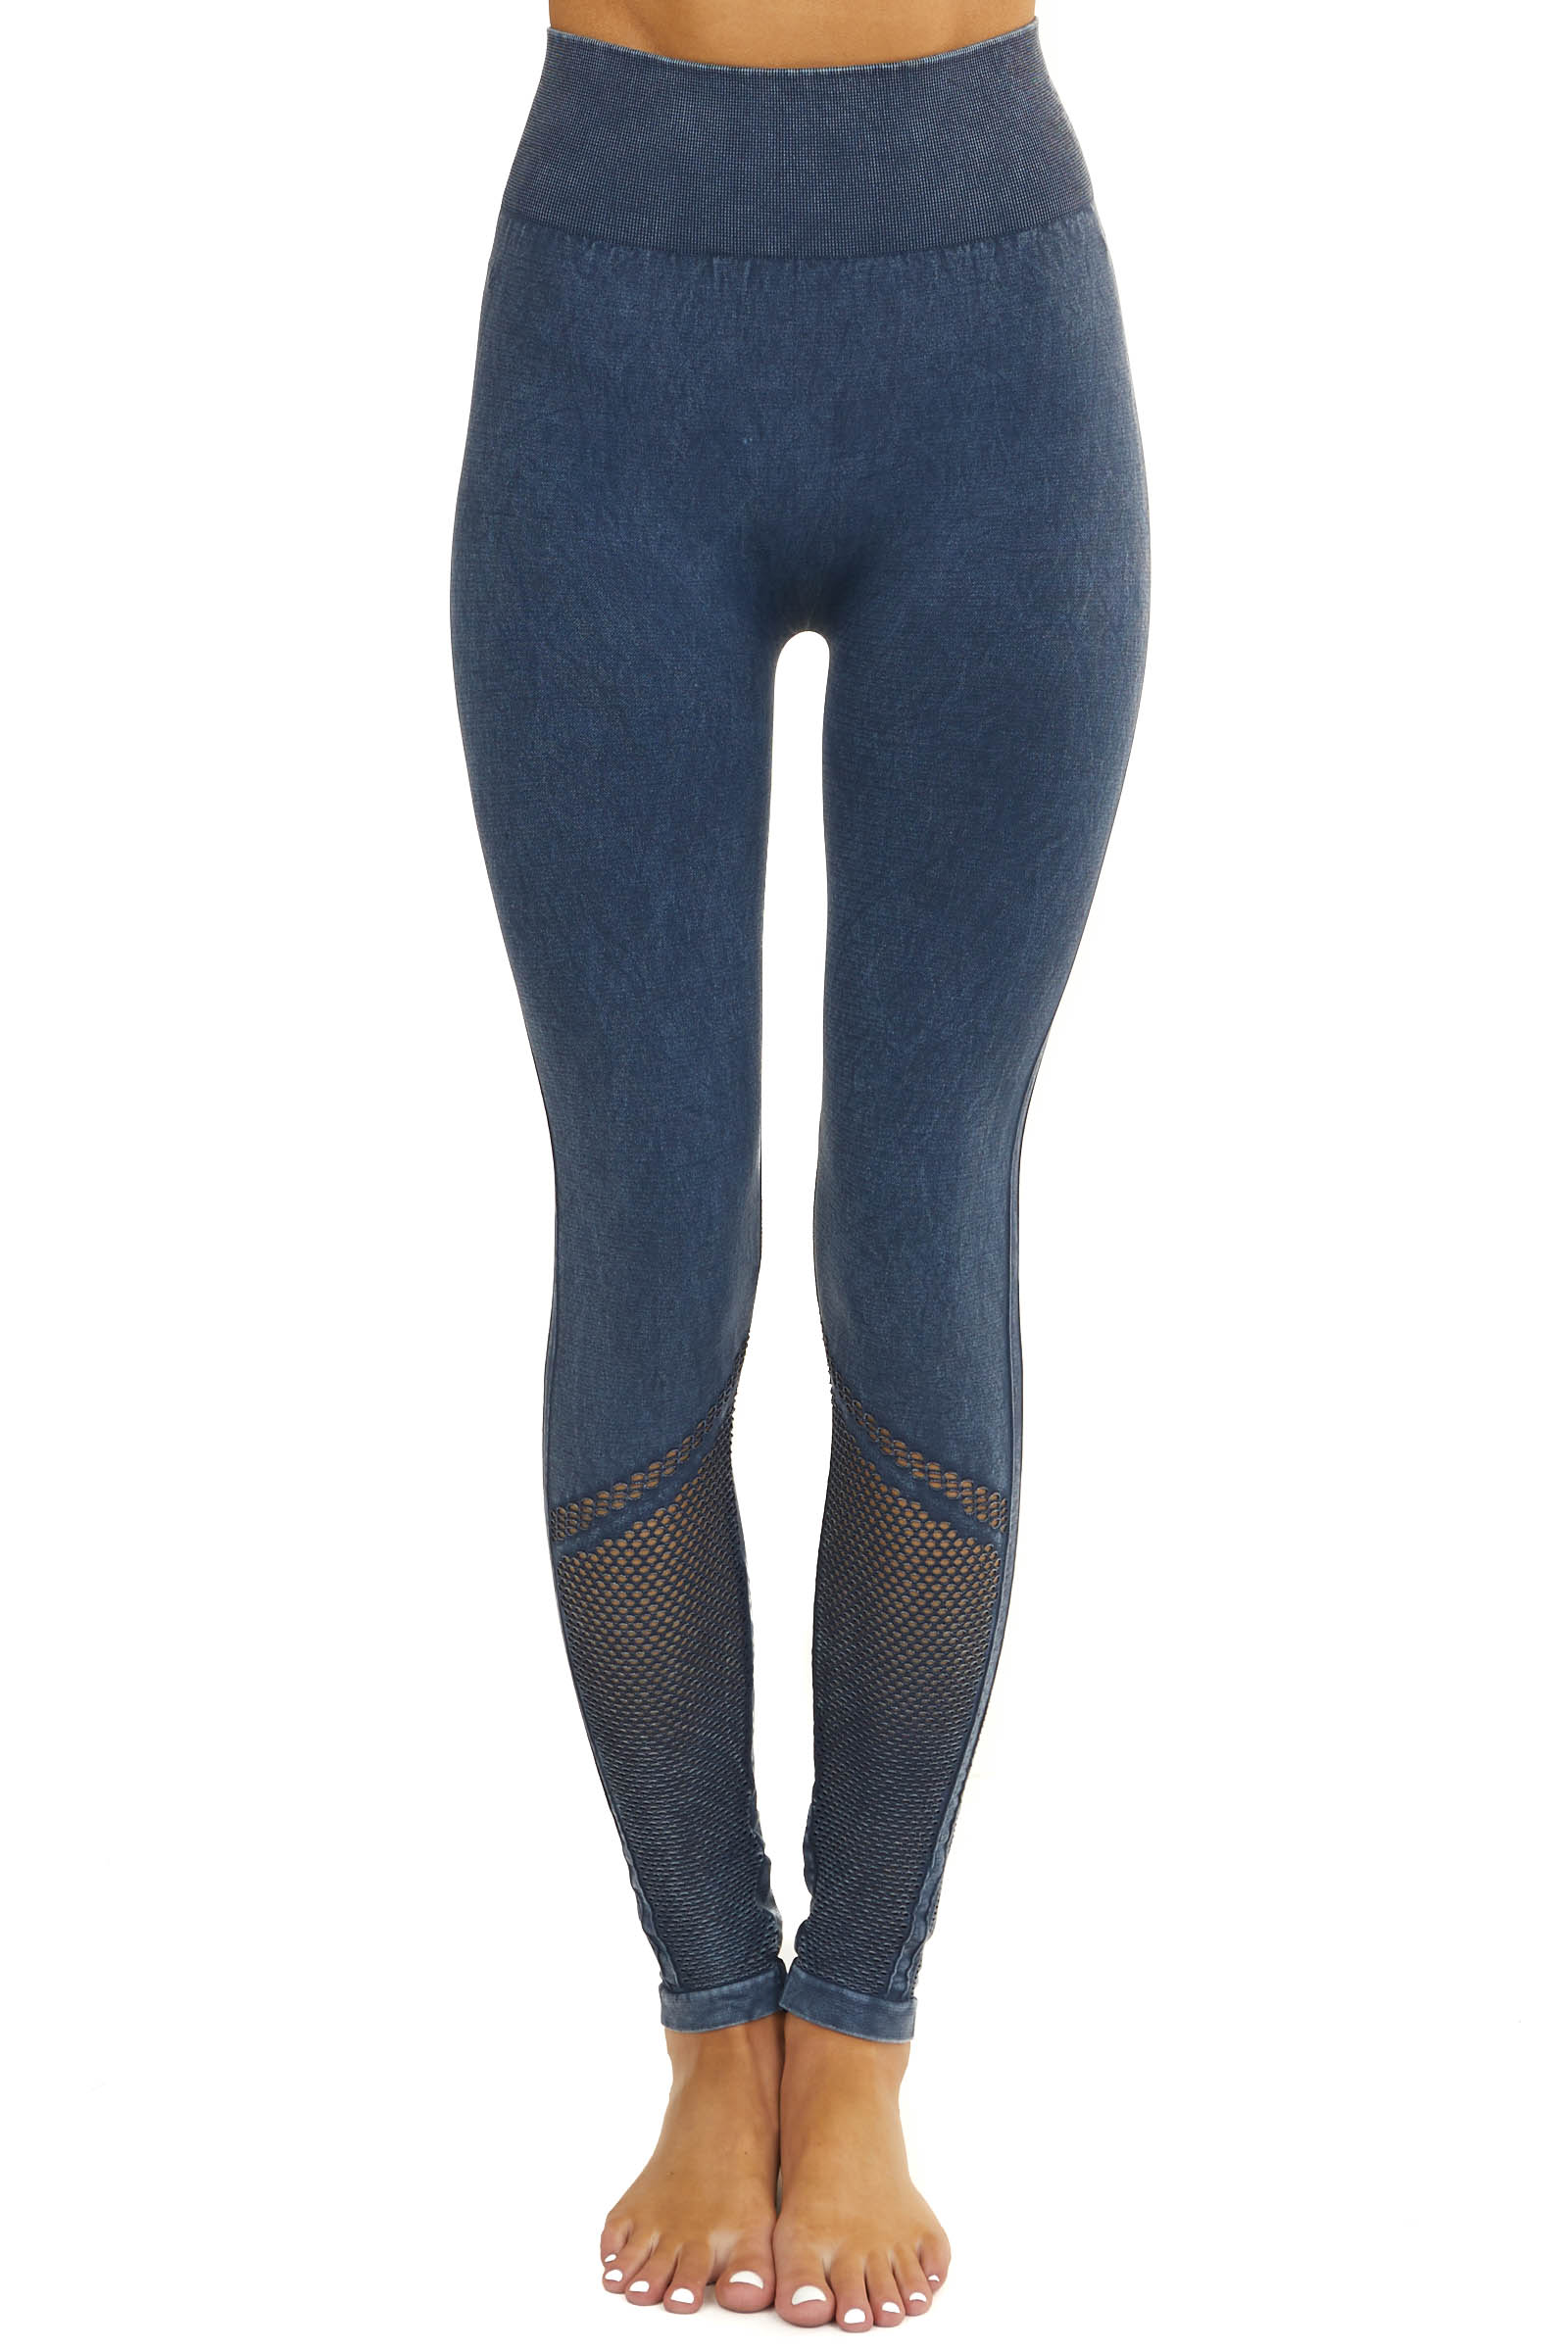 Faded Navy Stretchy Leggings with Mesh Details